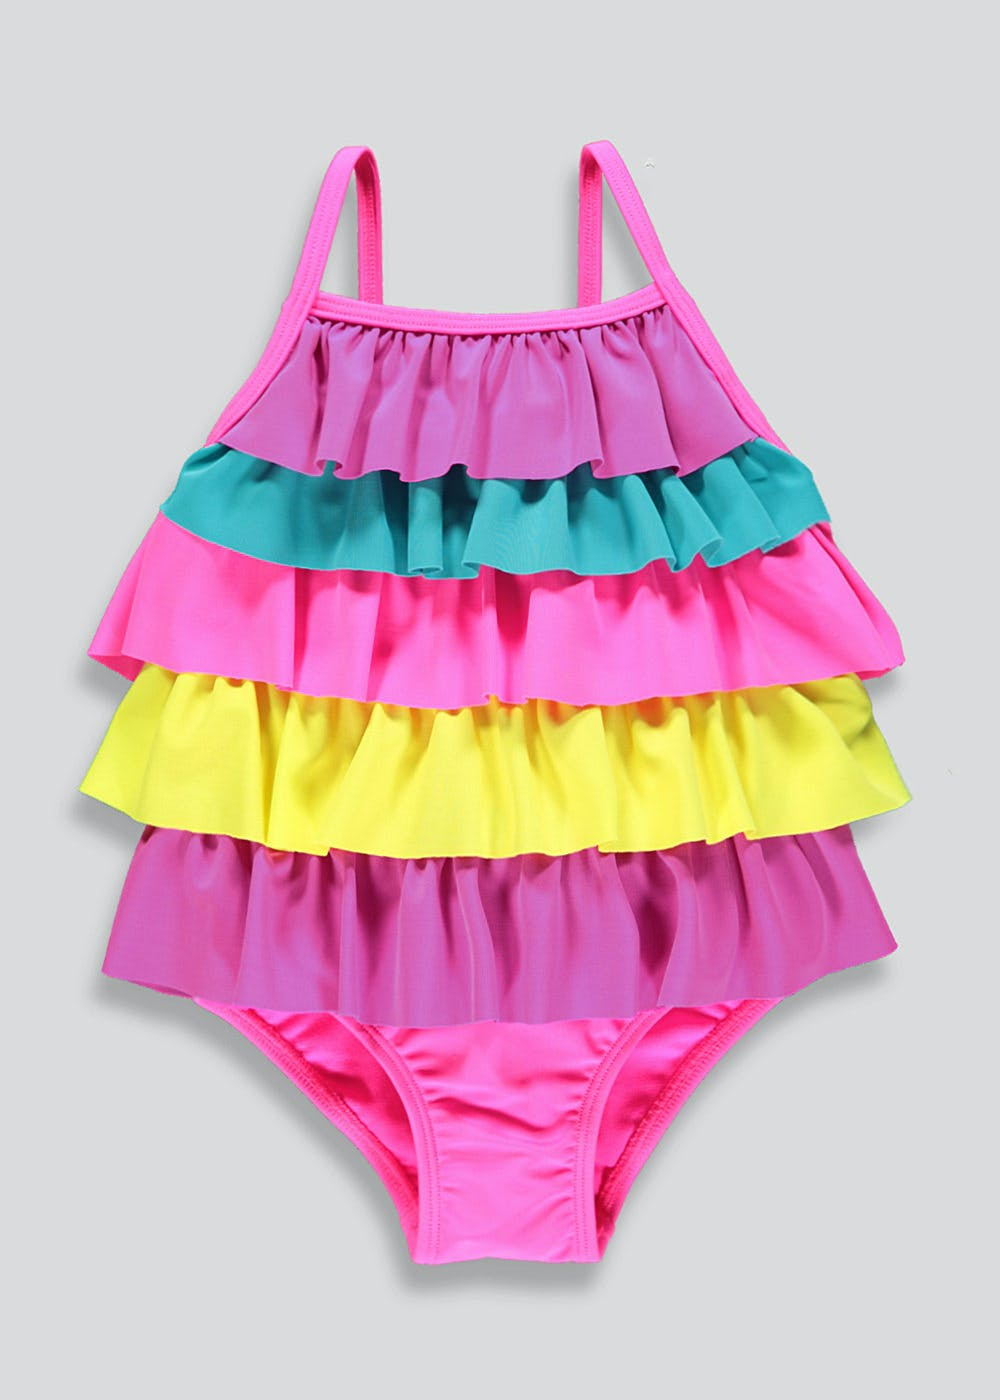 Swimsuit Set Suit Hat And Beach Bag Sz 12-18m New Nwt Baby & Toddler Clothing